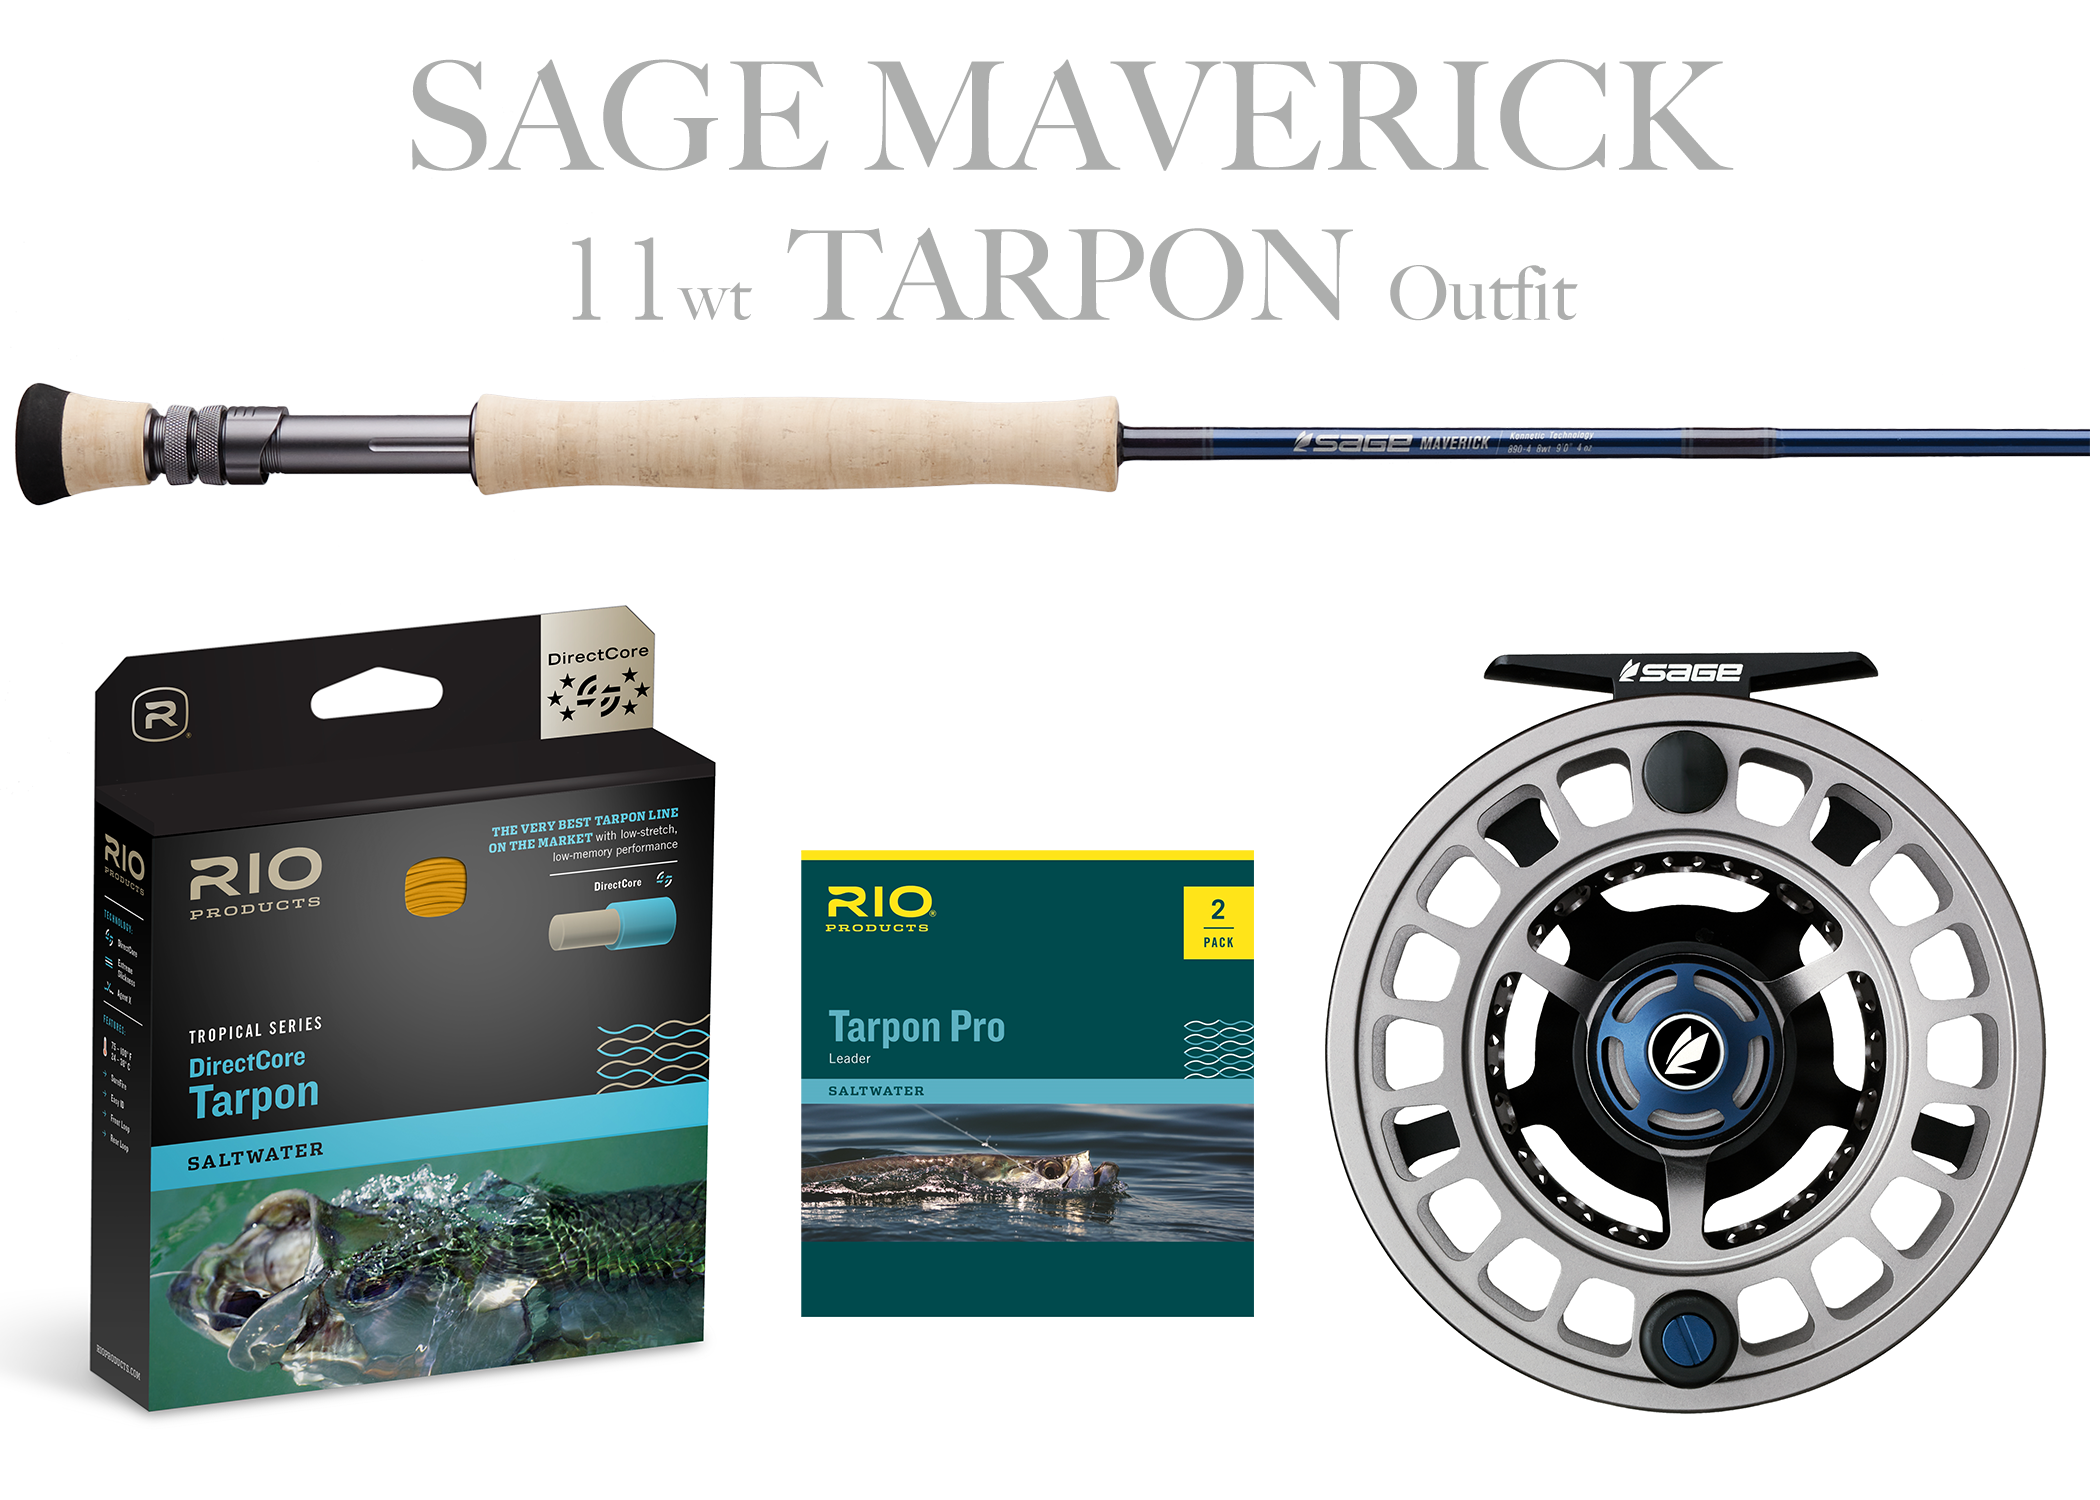 Sage MAVERICK Fly Rod - TARPON Combo 11wt Fly Rod + Spectrum MAX Reel (11/12)